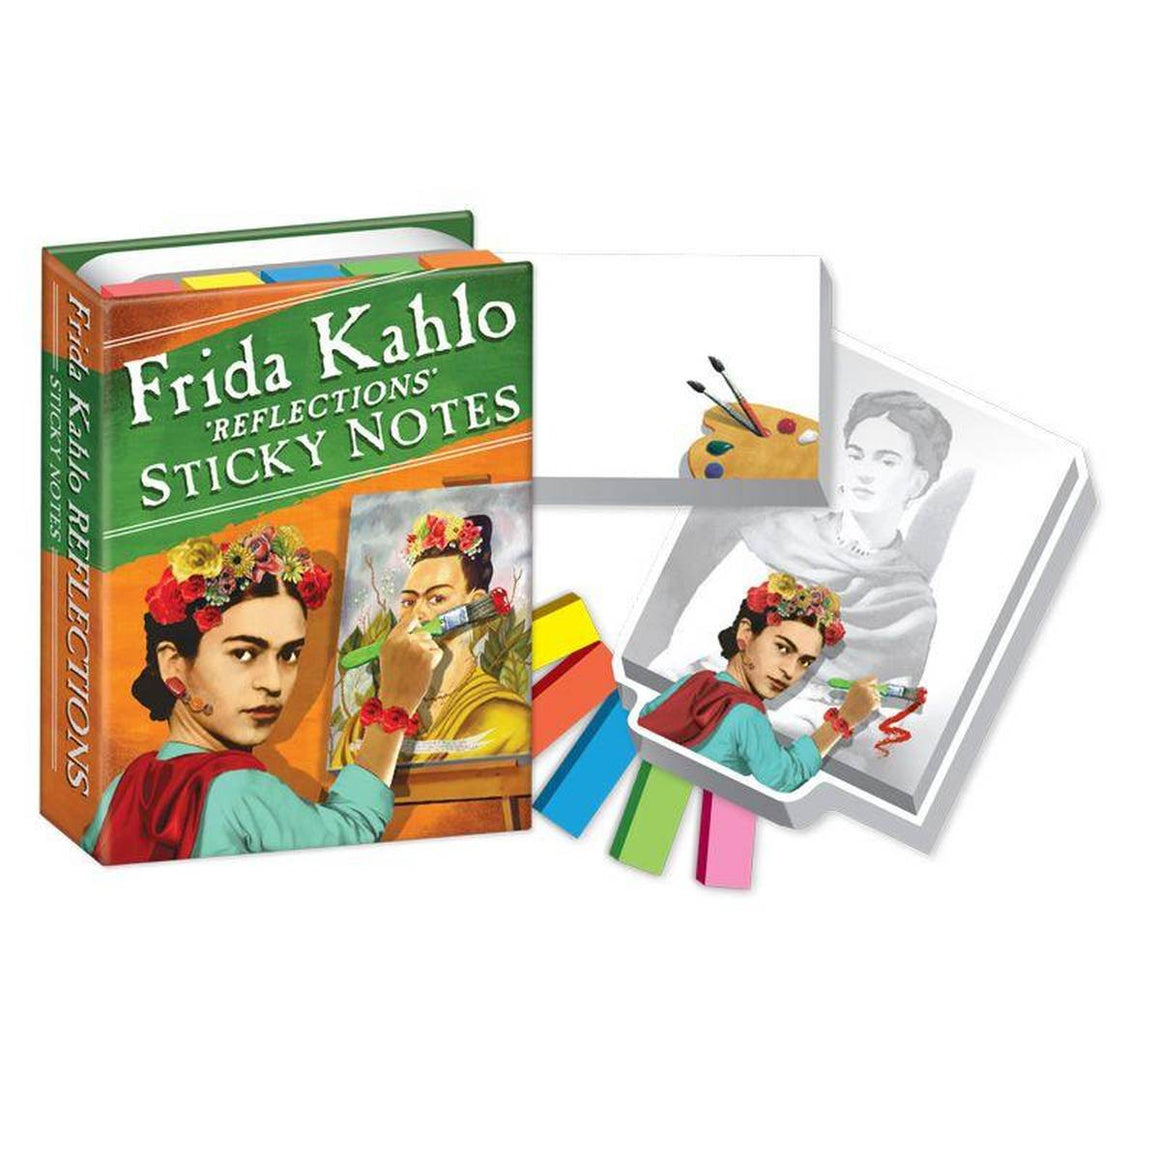 A small box of variously sized sticky notes, printed with images of Frida Kahlo.